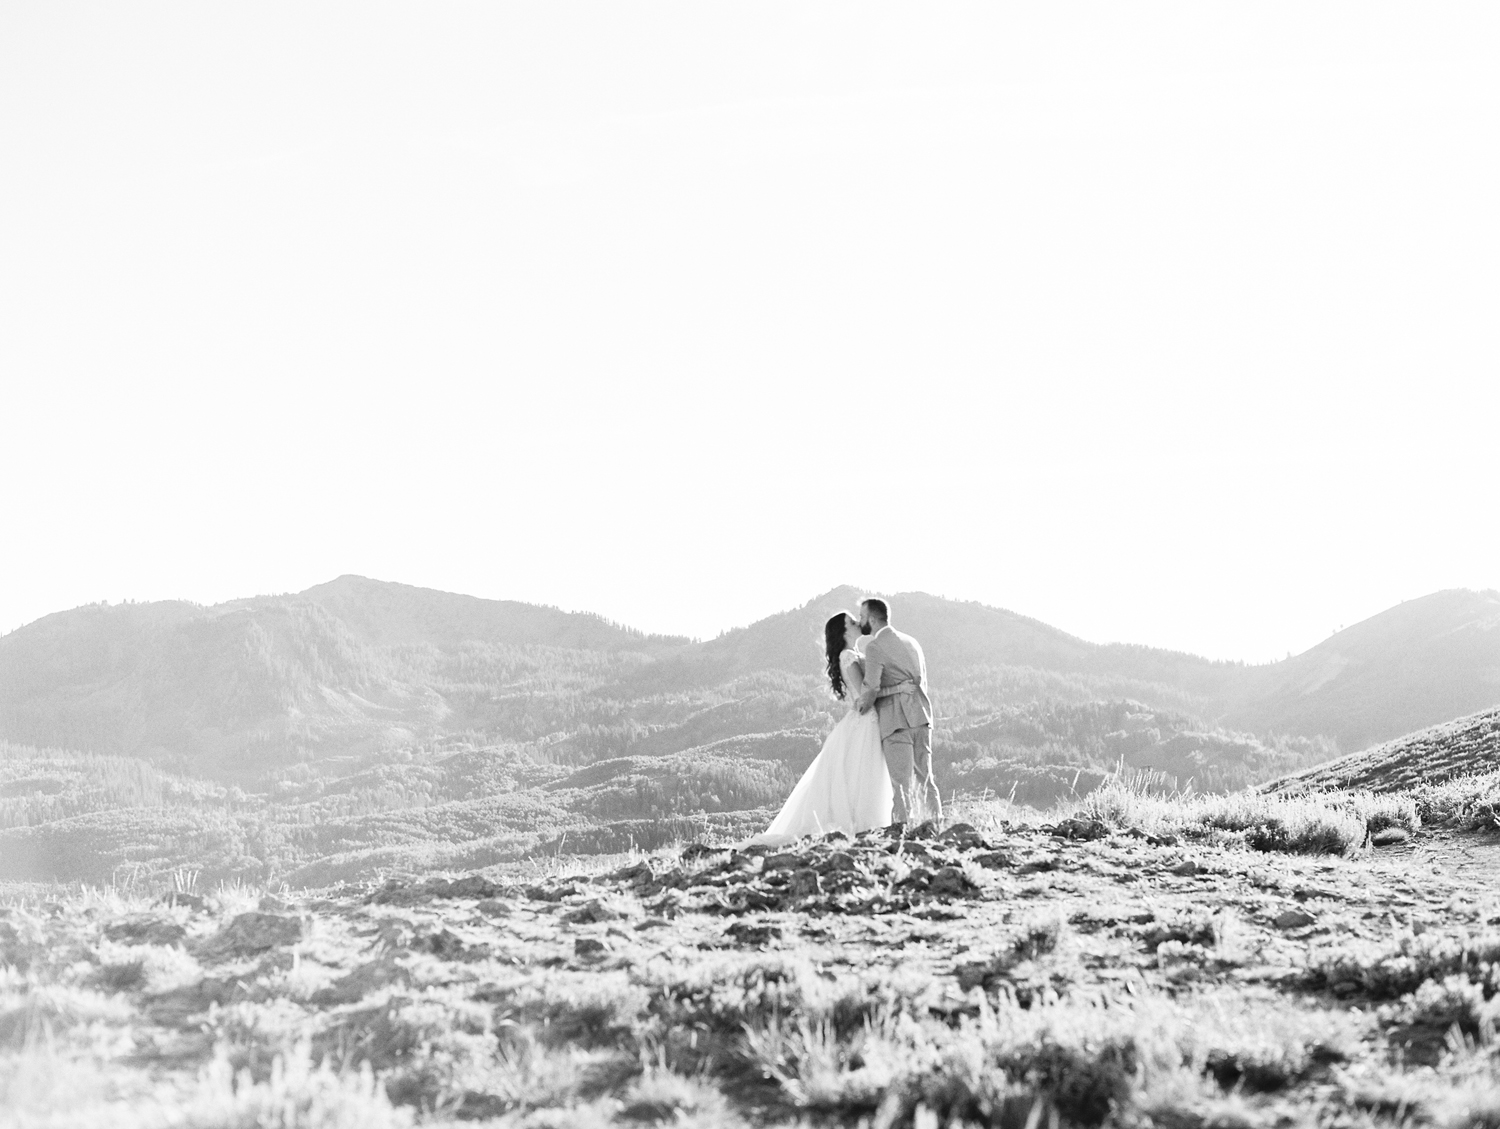 mountain-bridals_lindseystewartphotography_0040.jpg